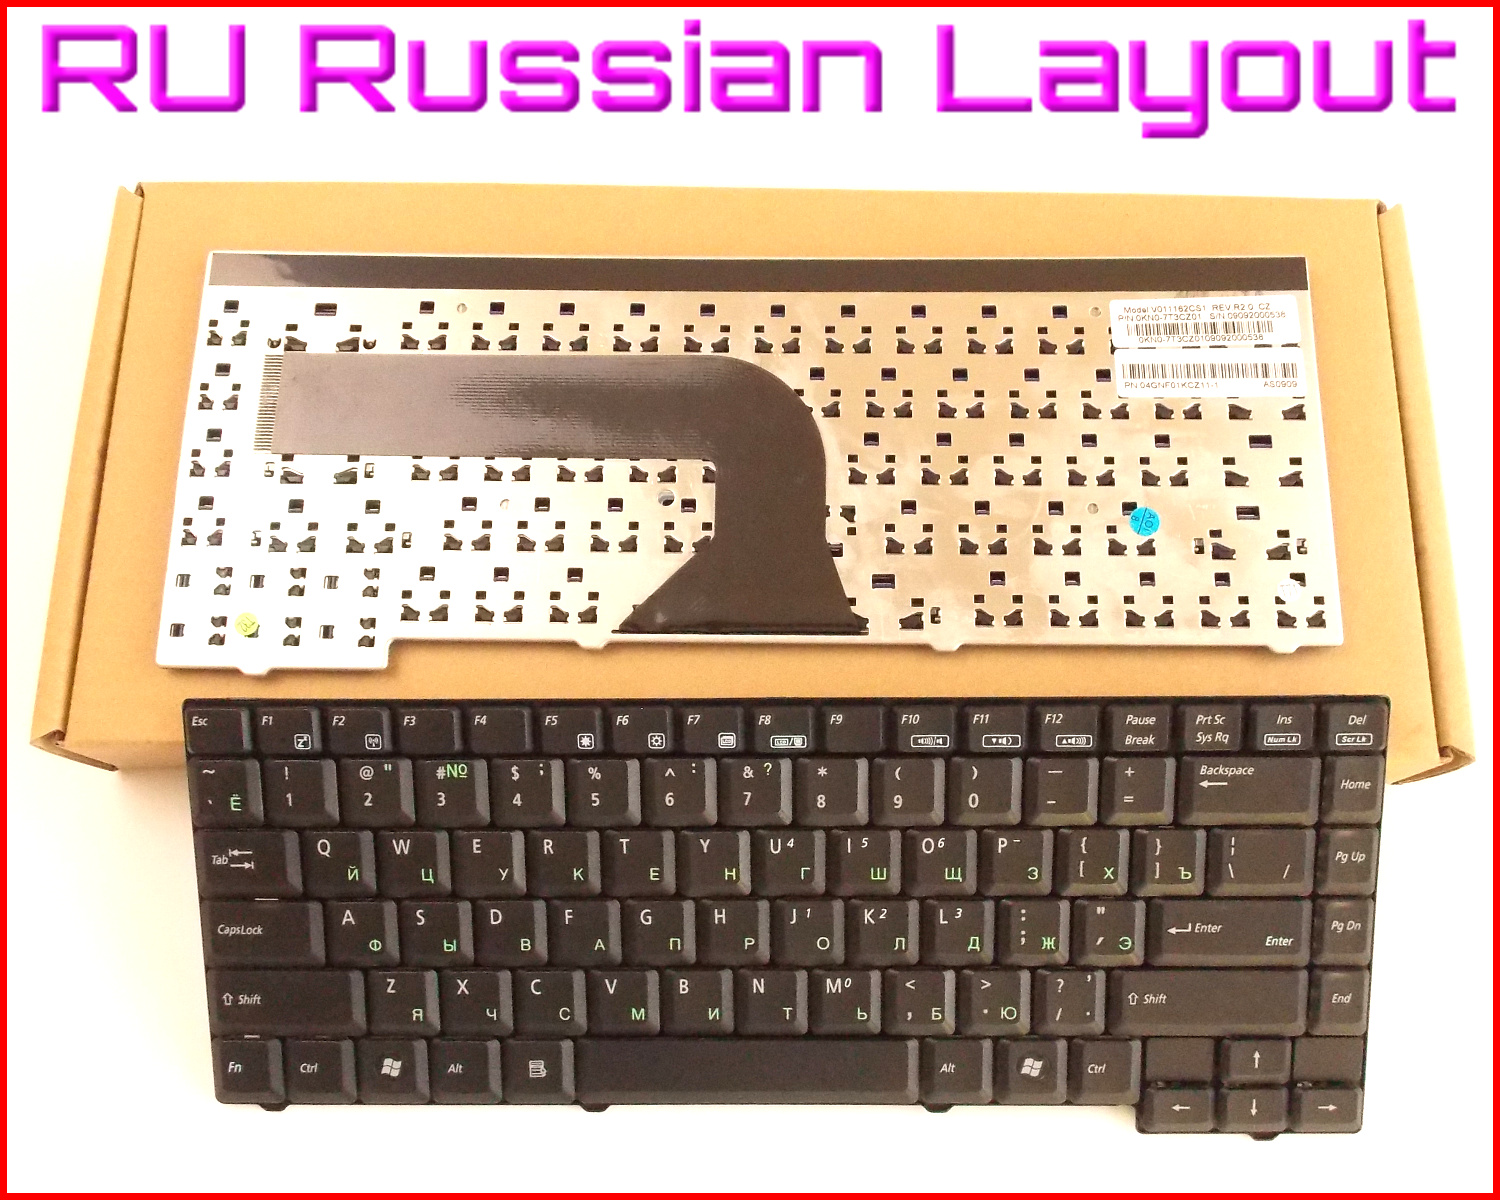 New Keyboard RU Russian Version for ASUS Z94 Z94R Z94L Z94Rp Z94G Z9T A9 A9T A9R A9Rp A9RP-5A0552A Laptop